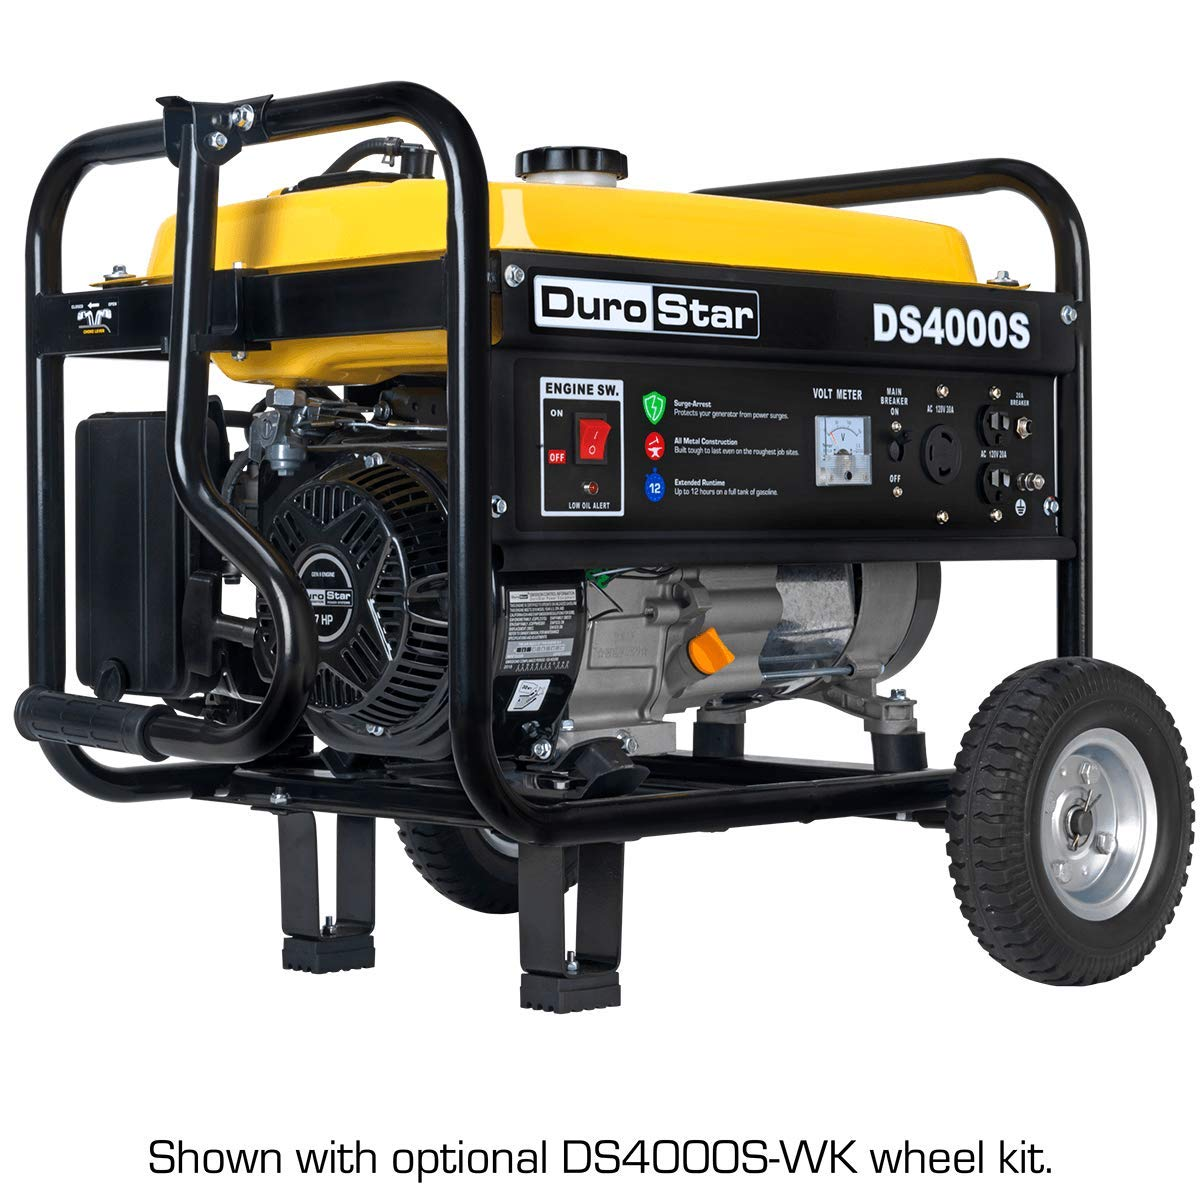 What's The Best 20 Gallon Air Compressor For Your Tools